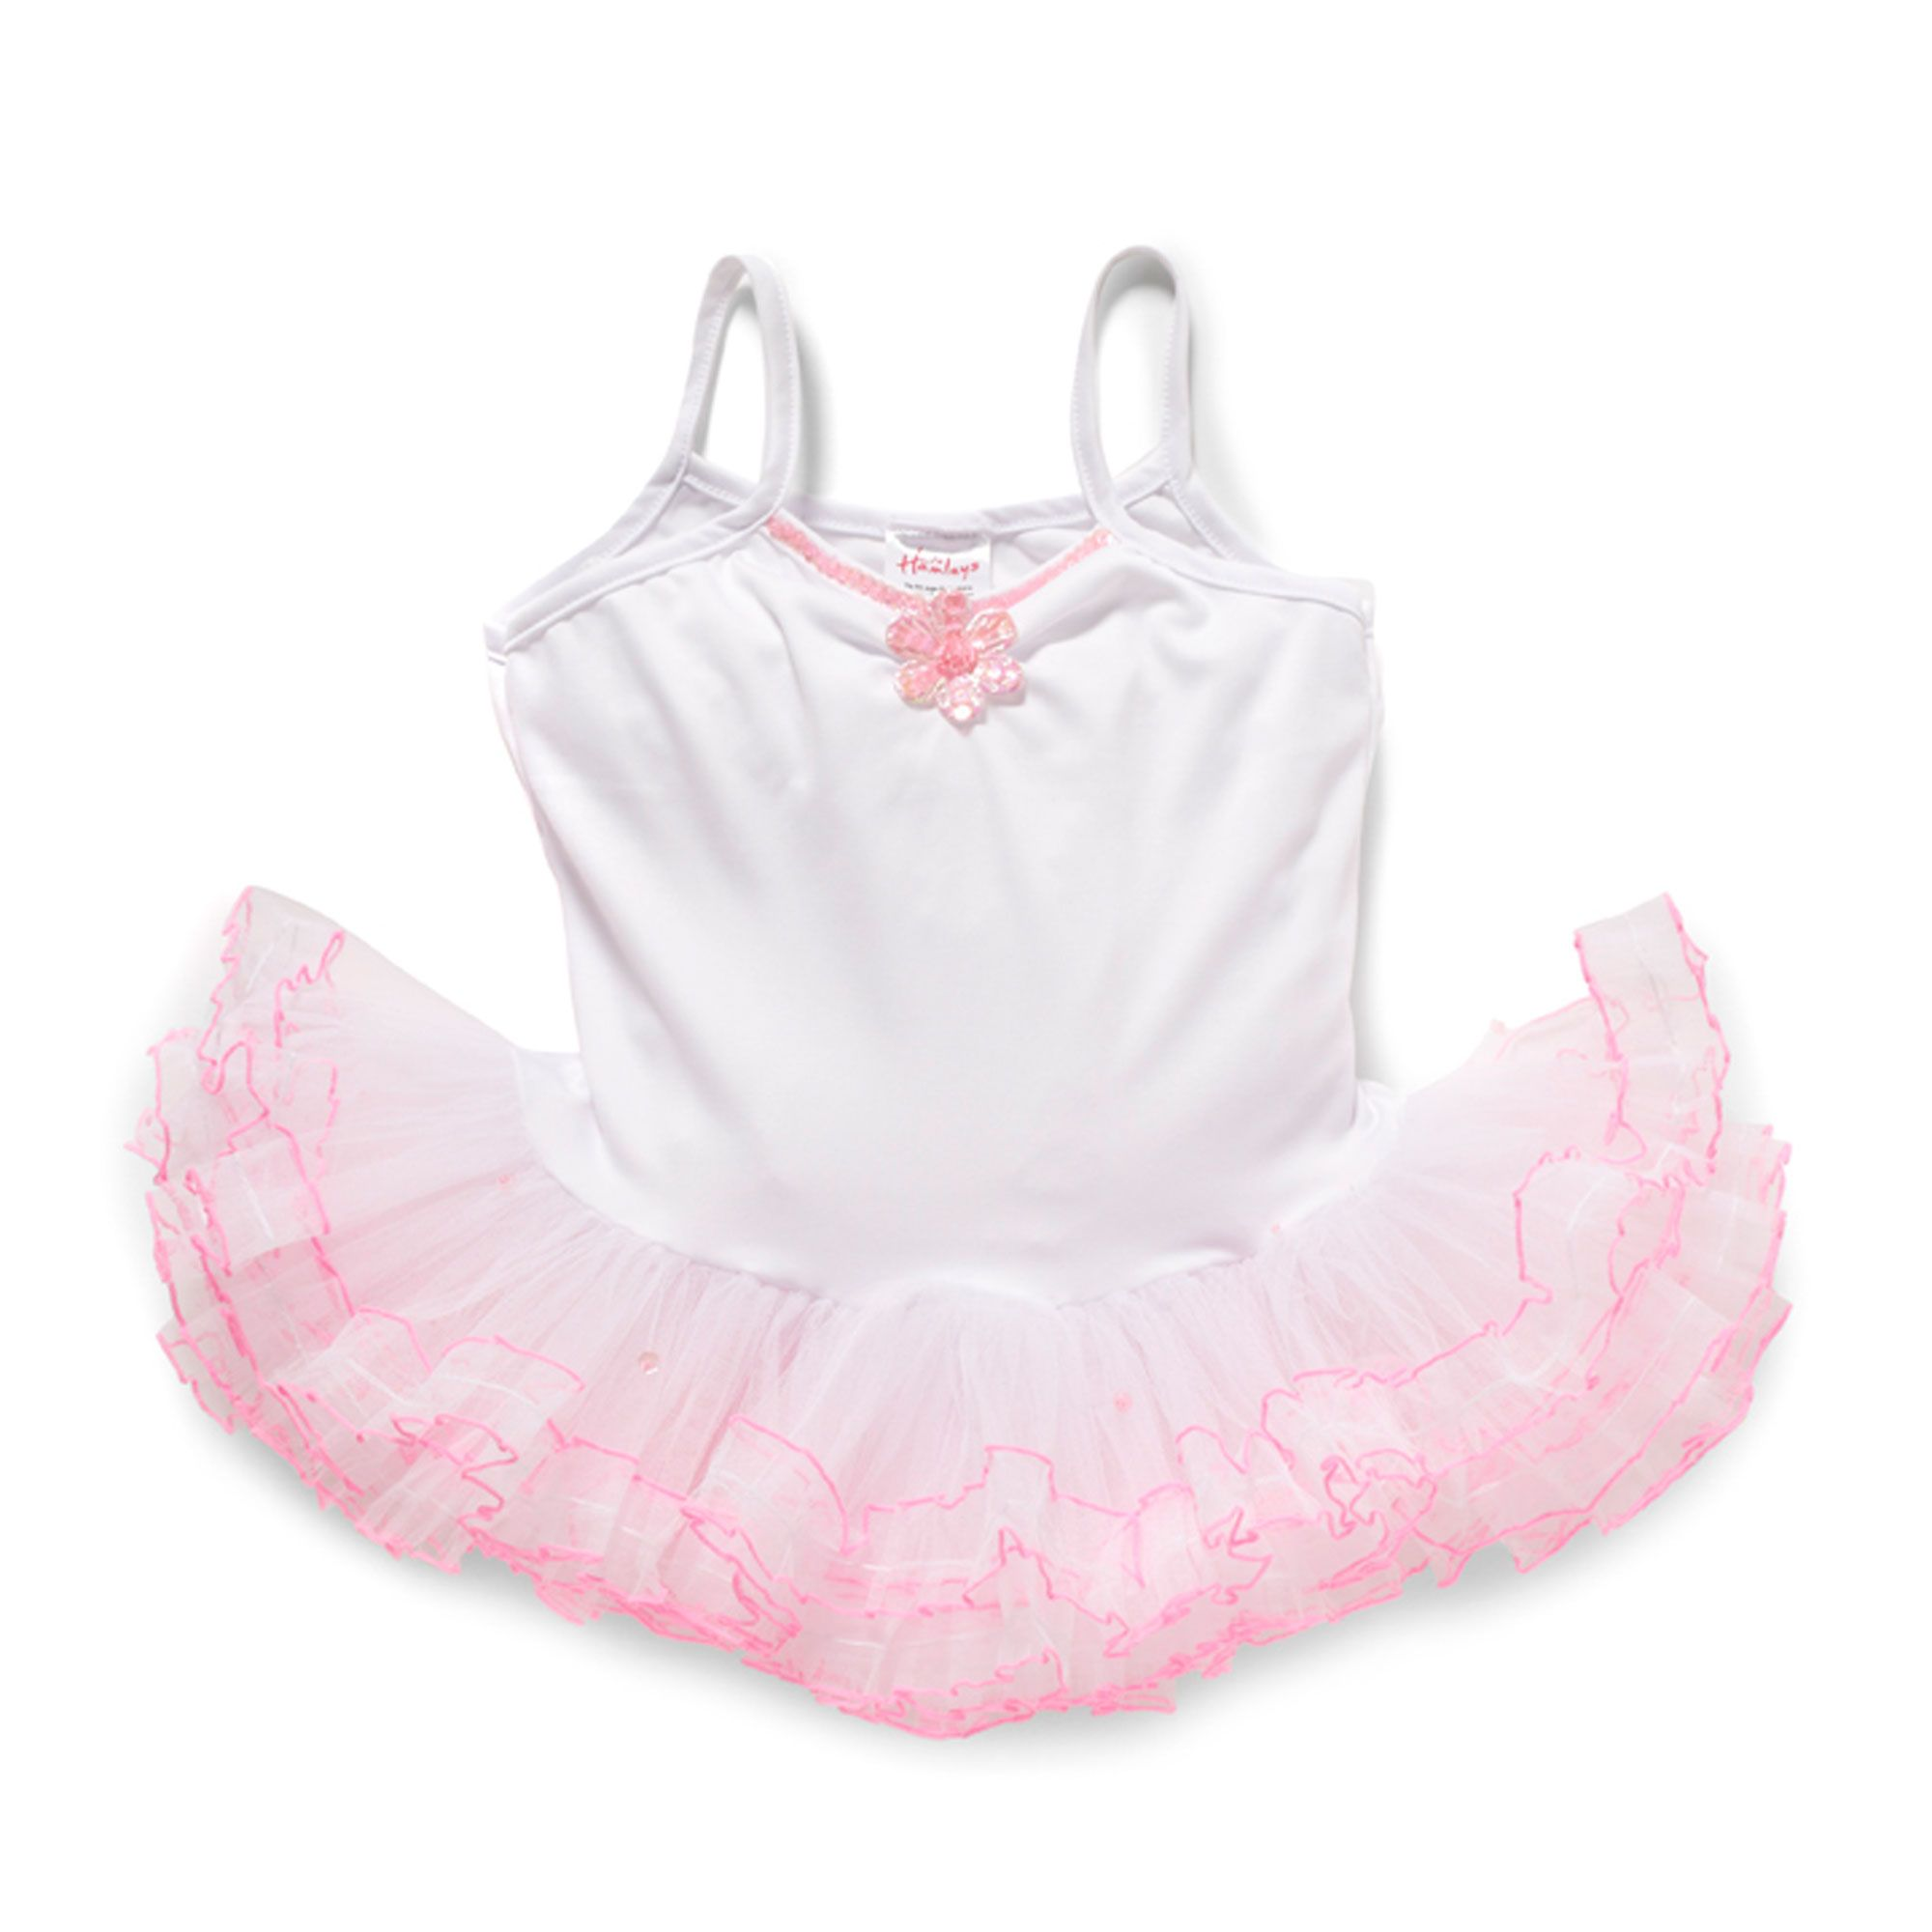 Hamleys Fuchsia Tutu Dress-Up Set 3-5 Years